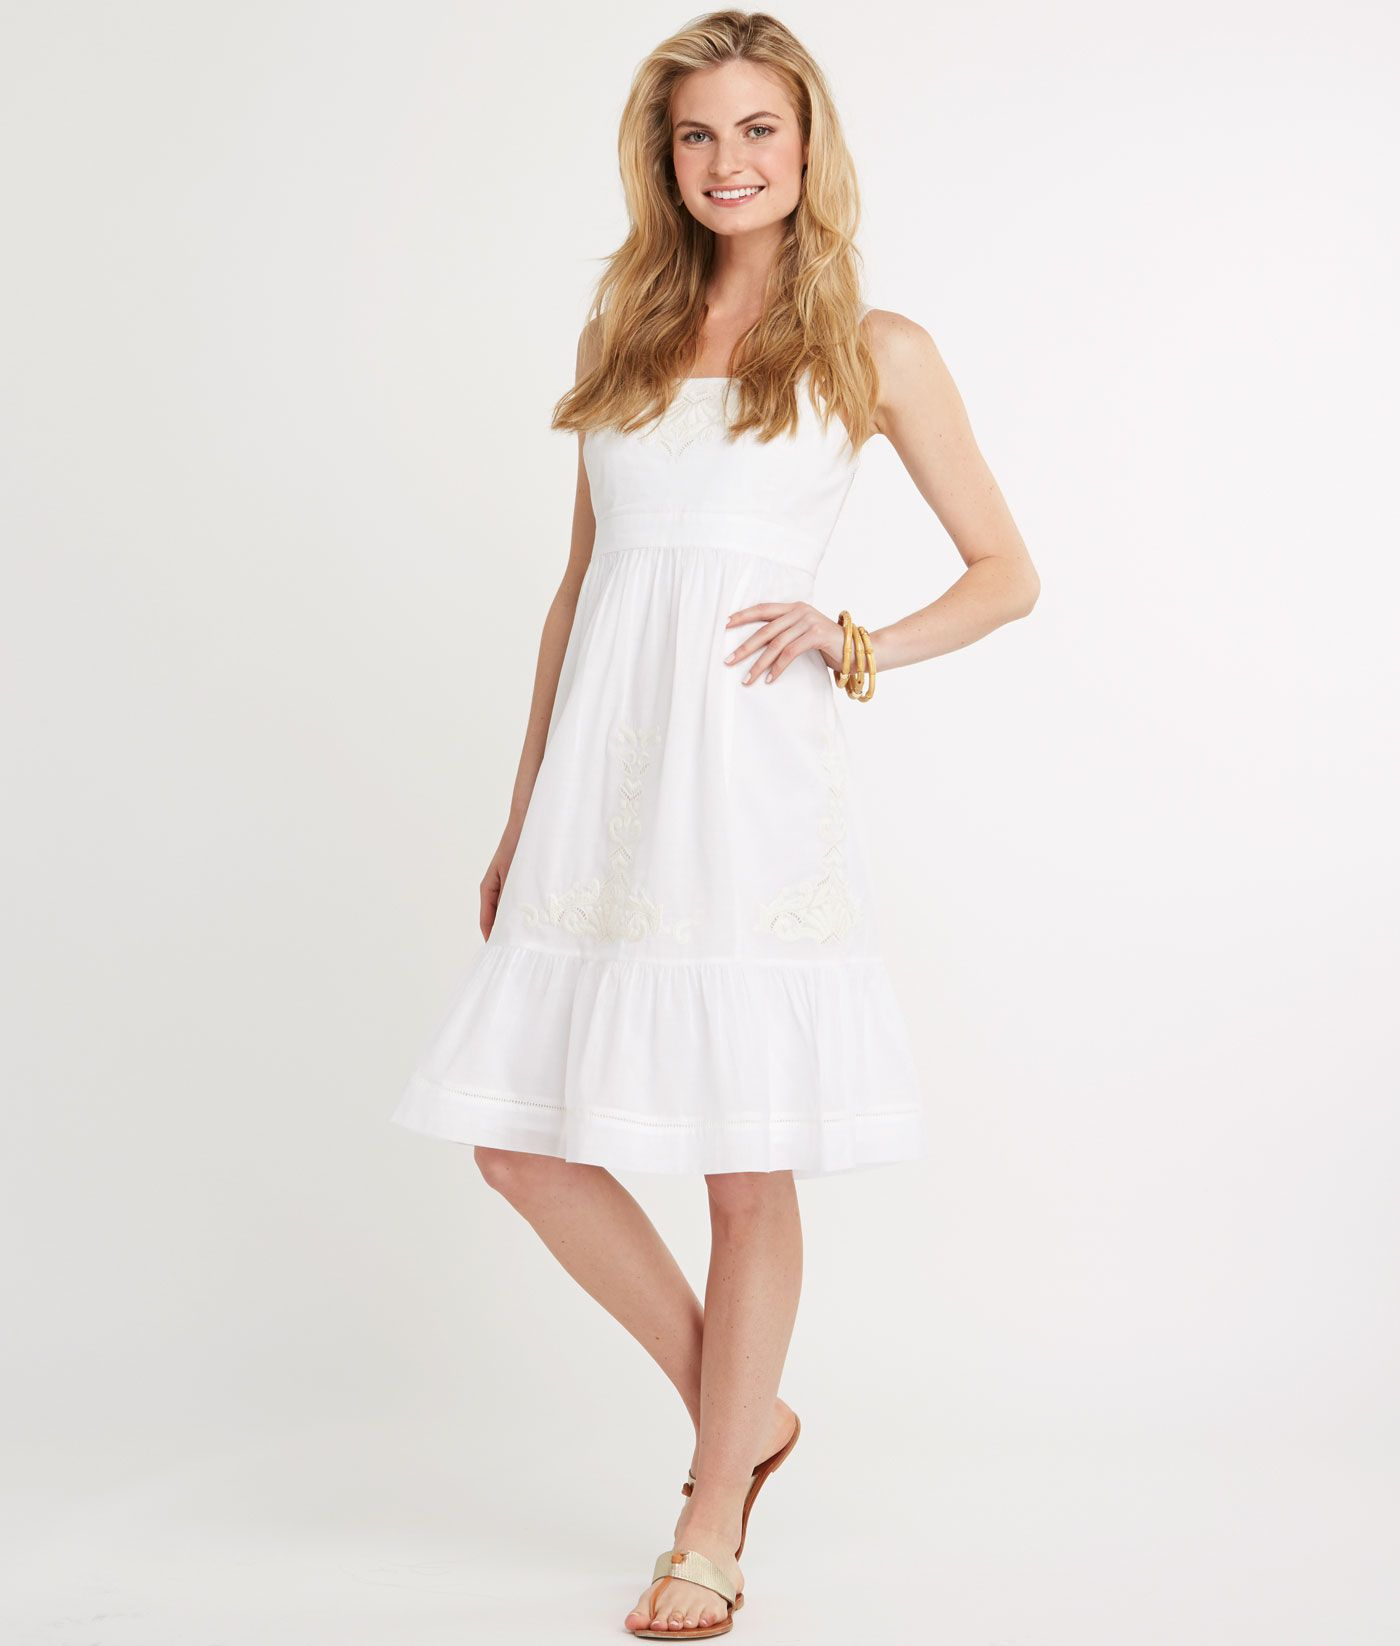 Shop Beach Embroidered Ruffle Dress At Vineyard Vines Ruffle Dress Dresses Womens Dresses [ 1646 x 1400 Pixel ]